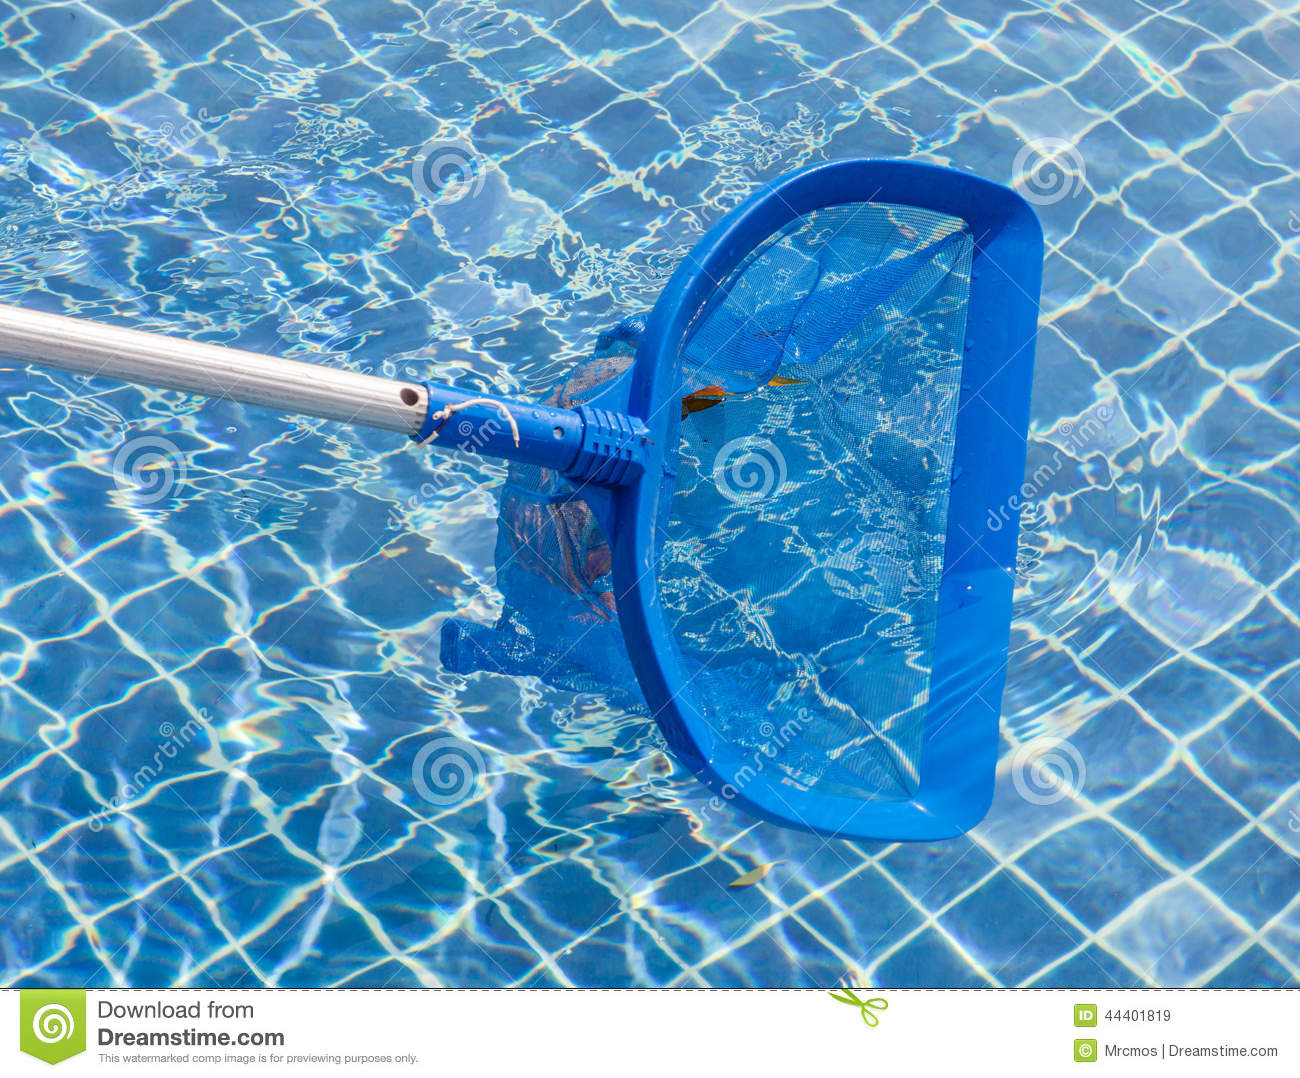 Cleaning And Maintenance Swimming Pool With Cleaning Net Blue S Stock Image Image 44401819